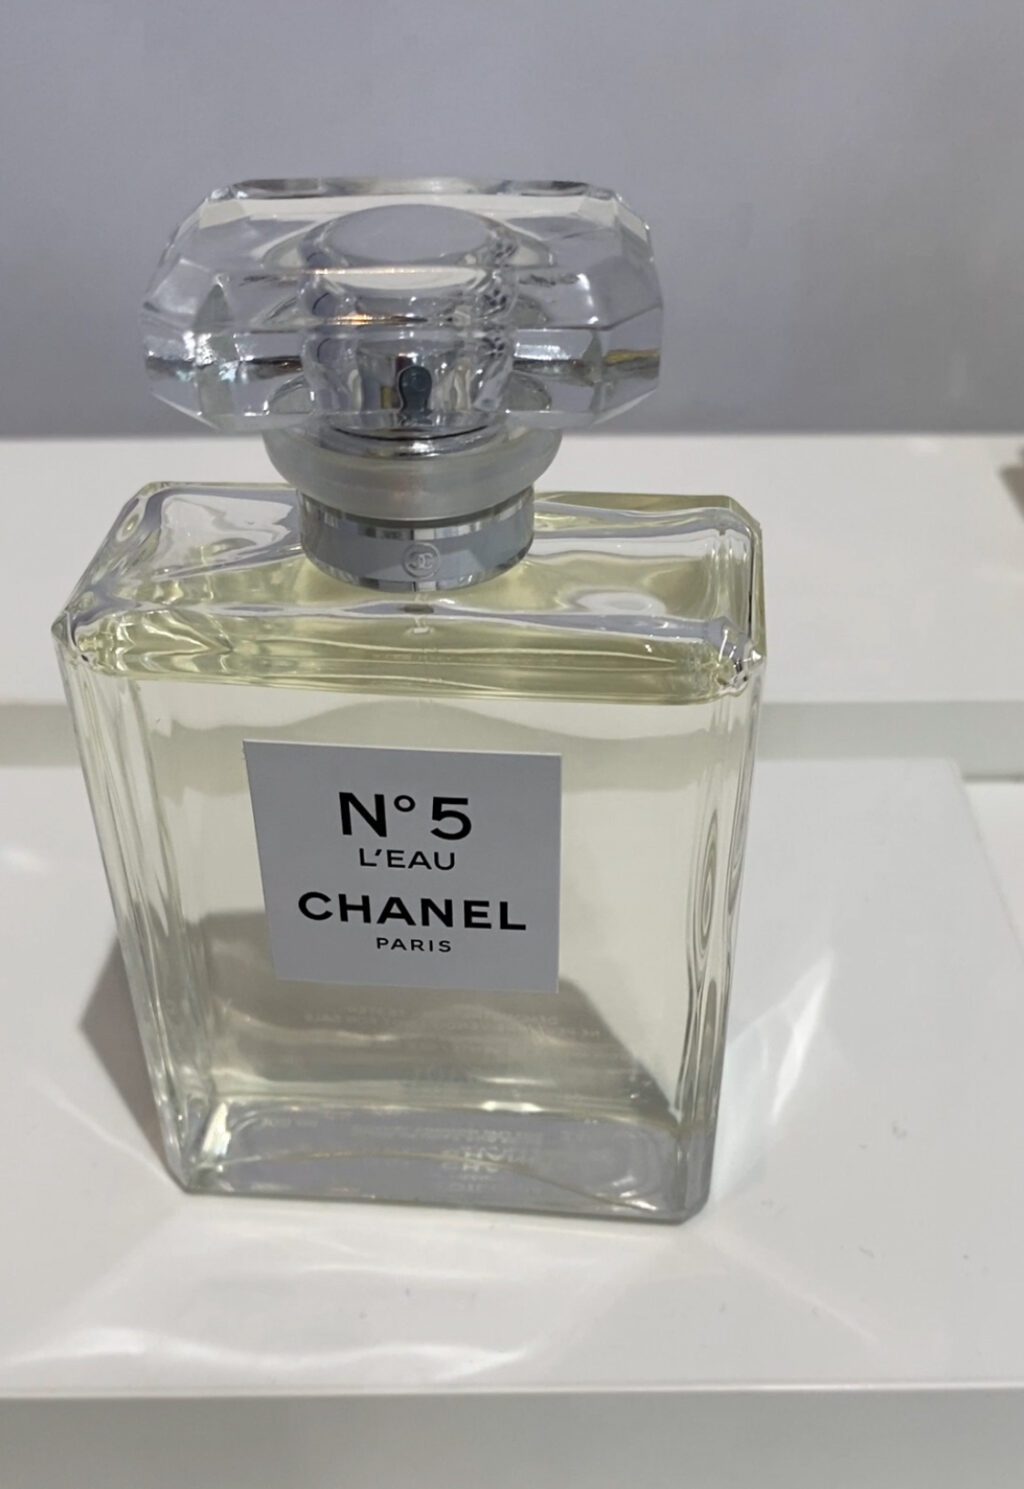 Just-take-a-look Berlin - Chanel Factory 5 - 5